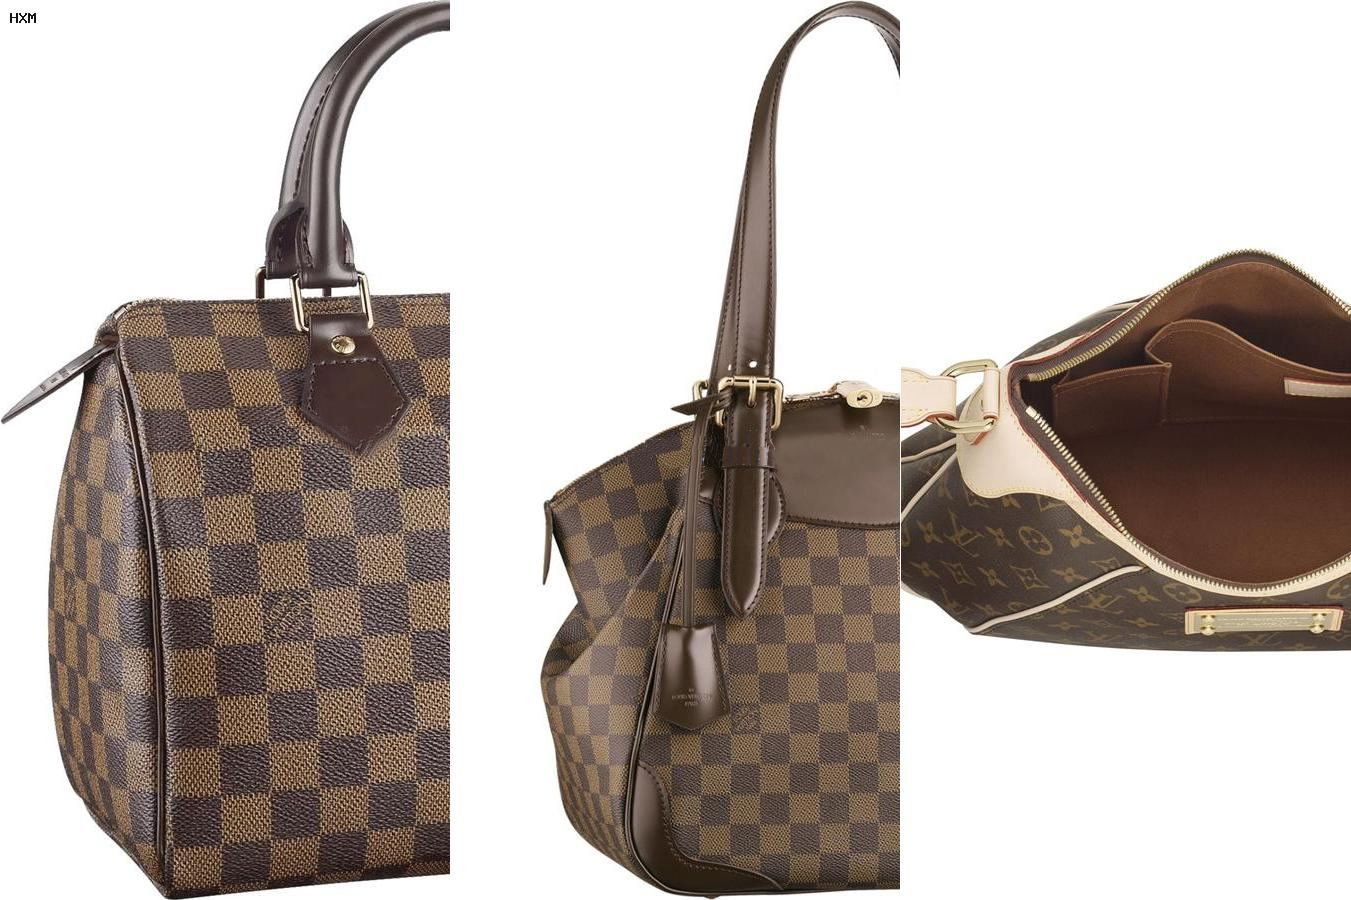 neverfull louis vuitton mm or gm